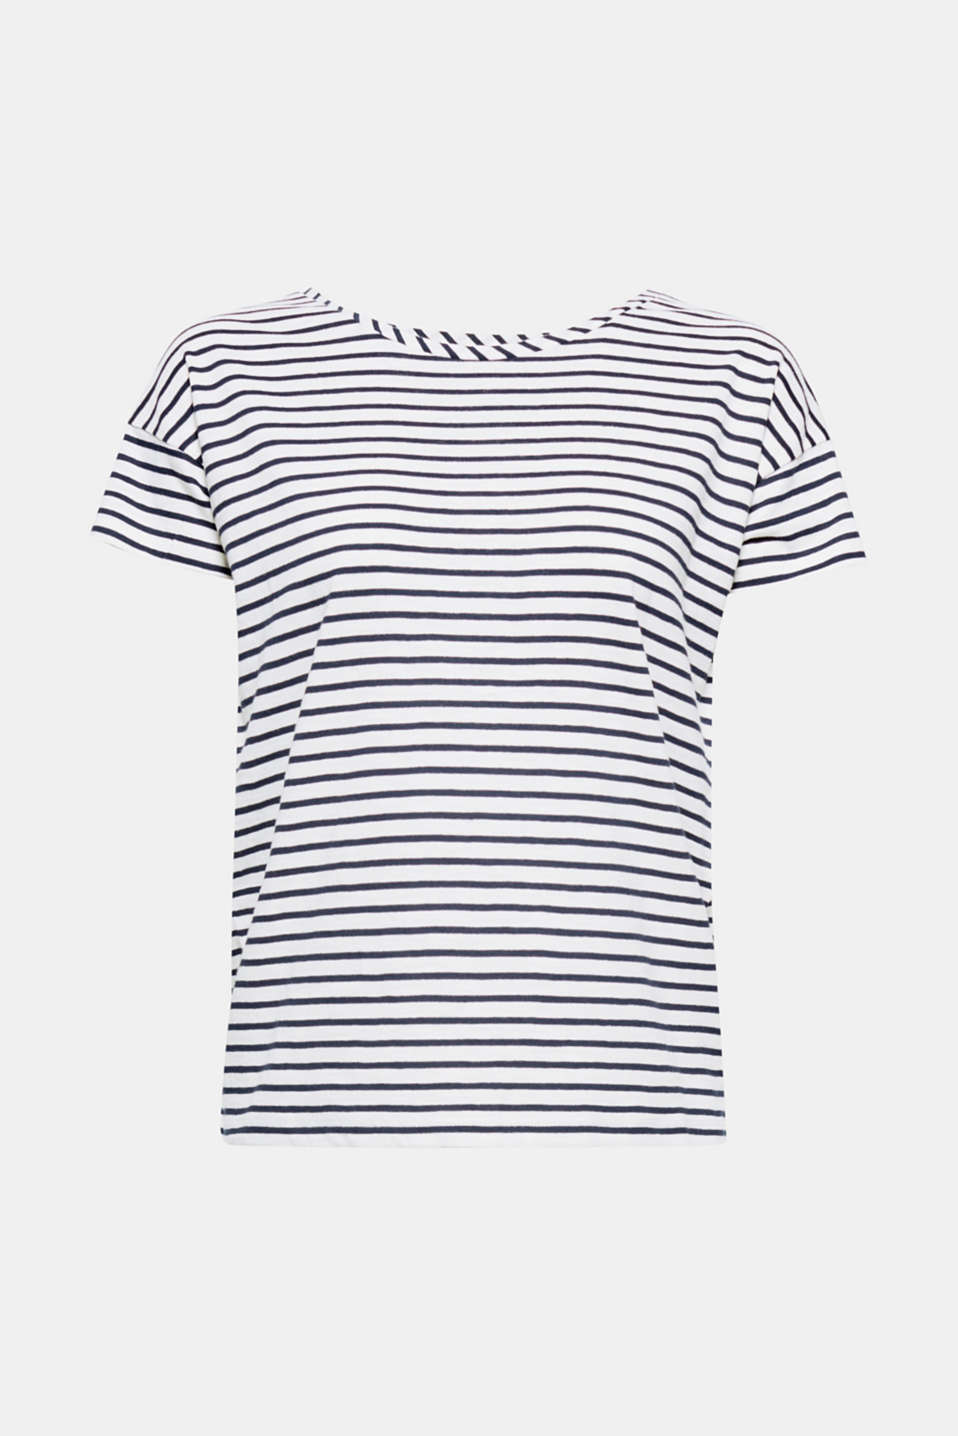 Nautical stripes meet decorative bows! The decorative bow elements on both sleeves give this cotton T-shirt its incredibly fashionable touch.